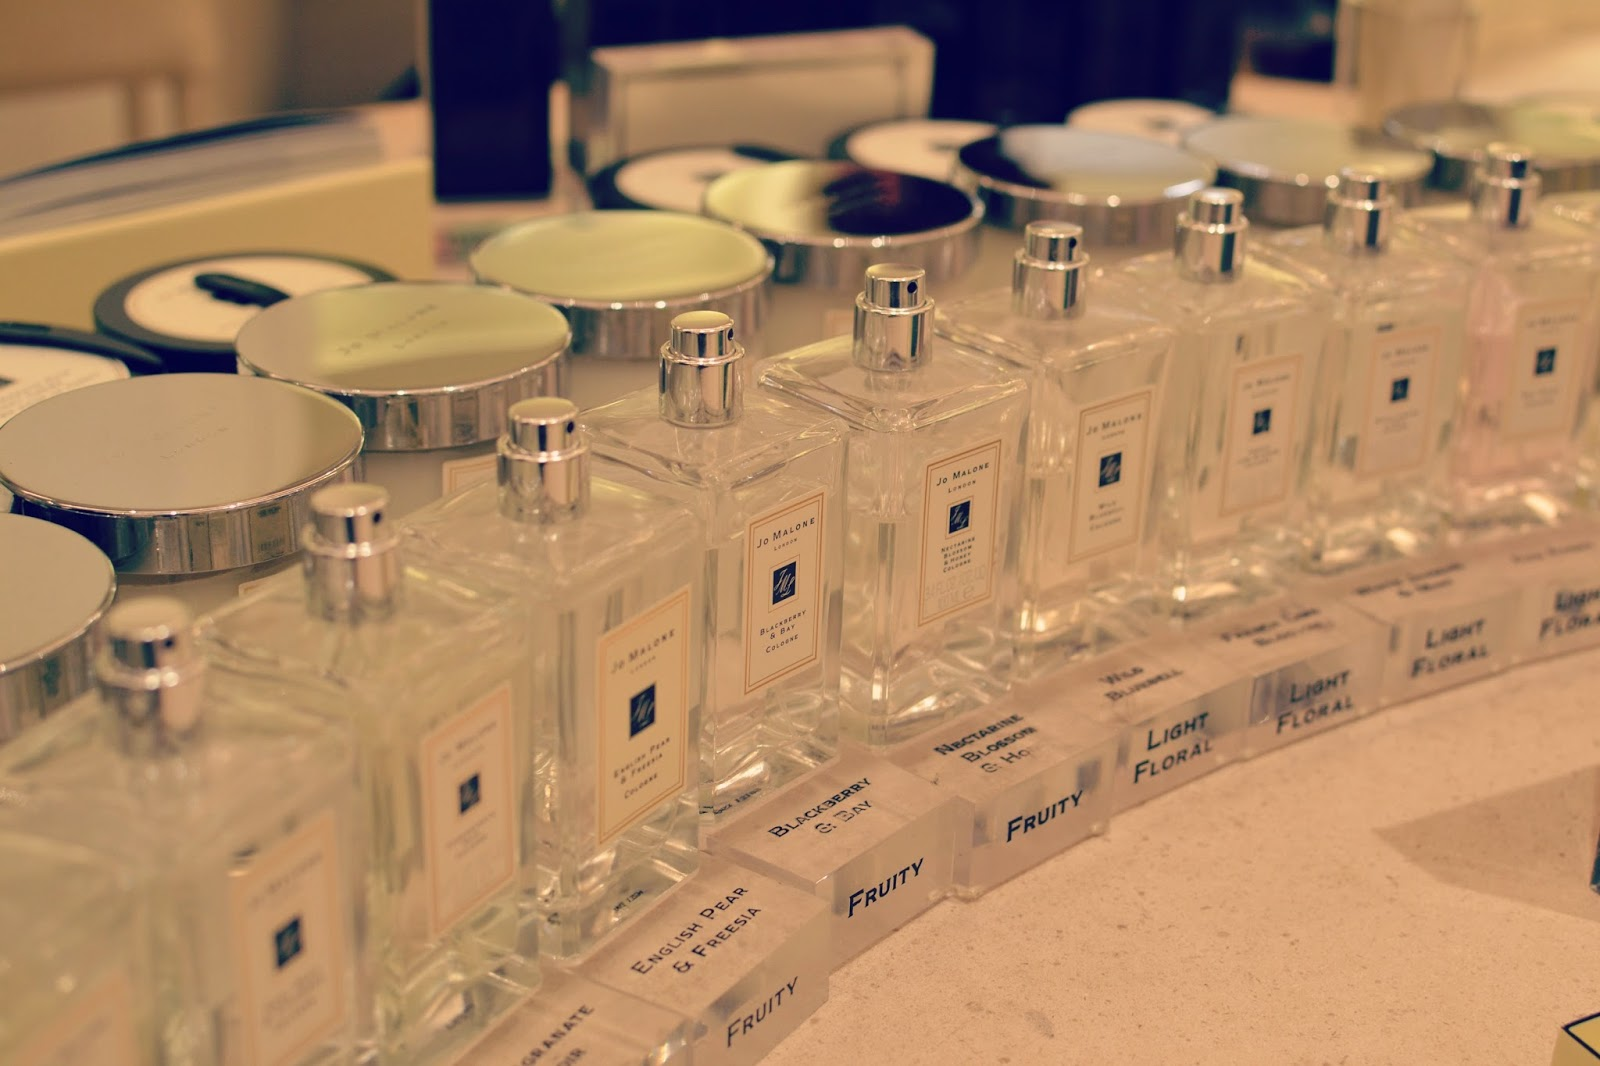 Jo Malone fragrance